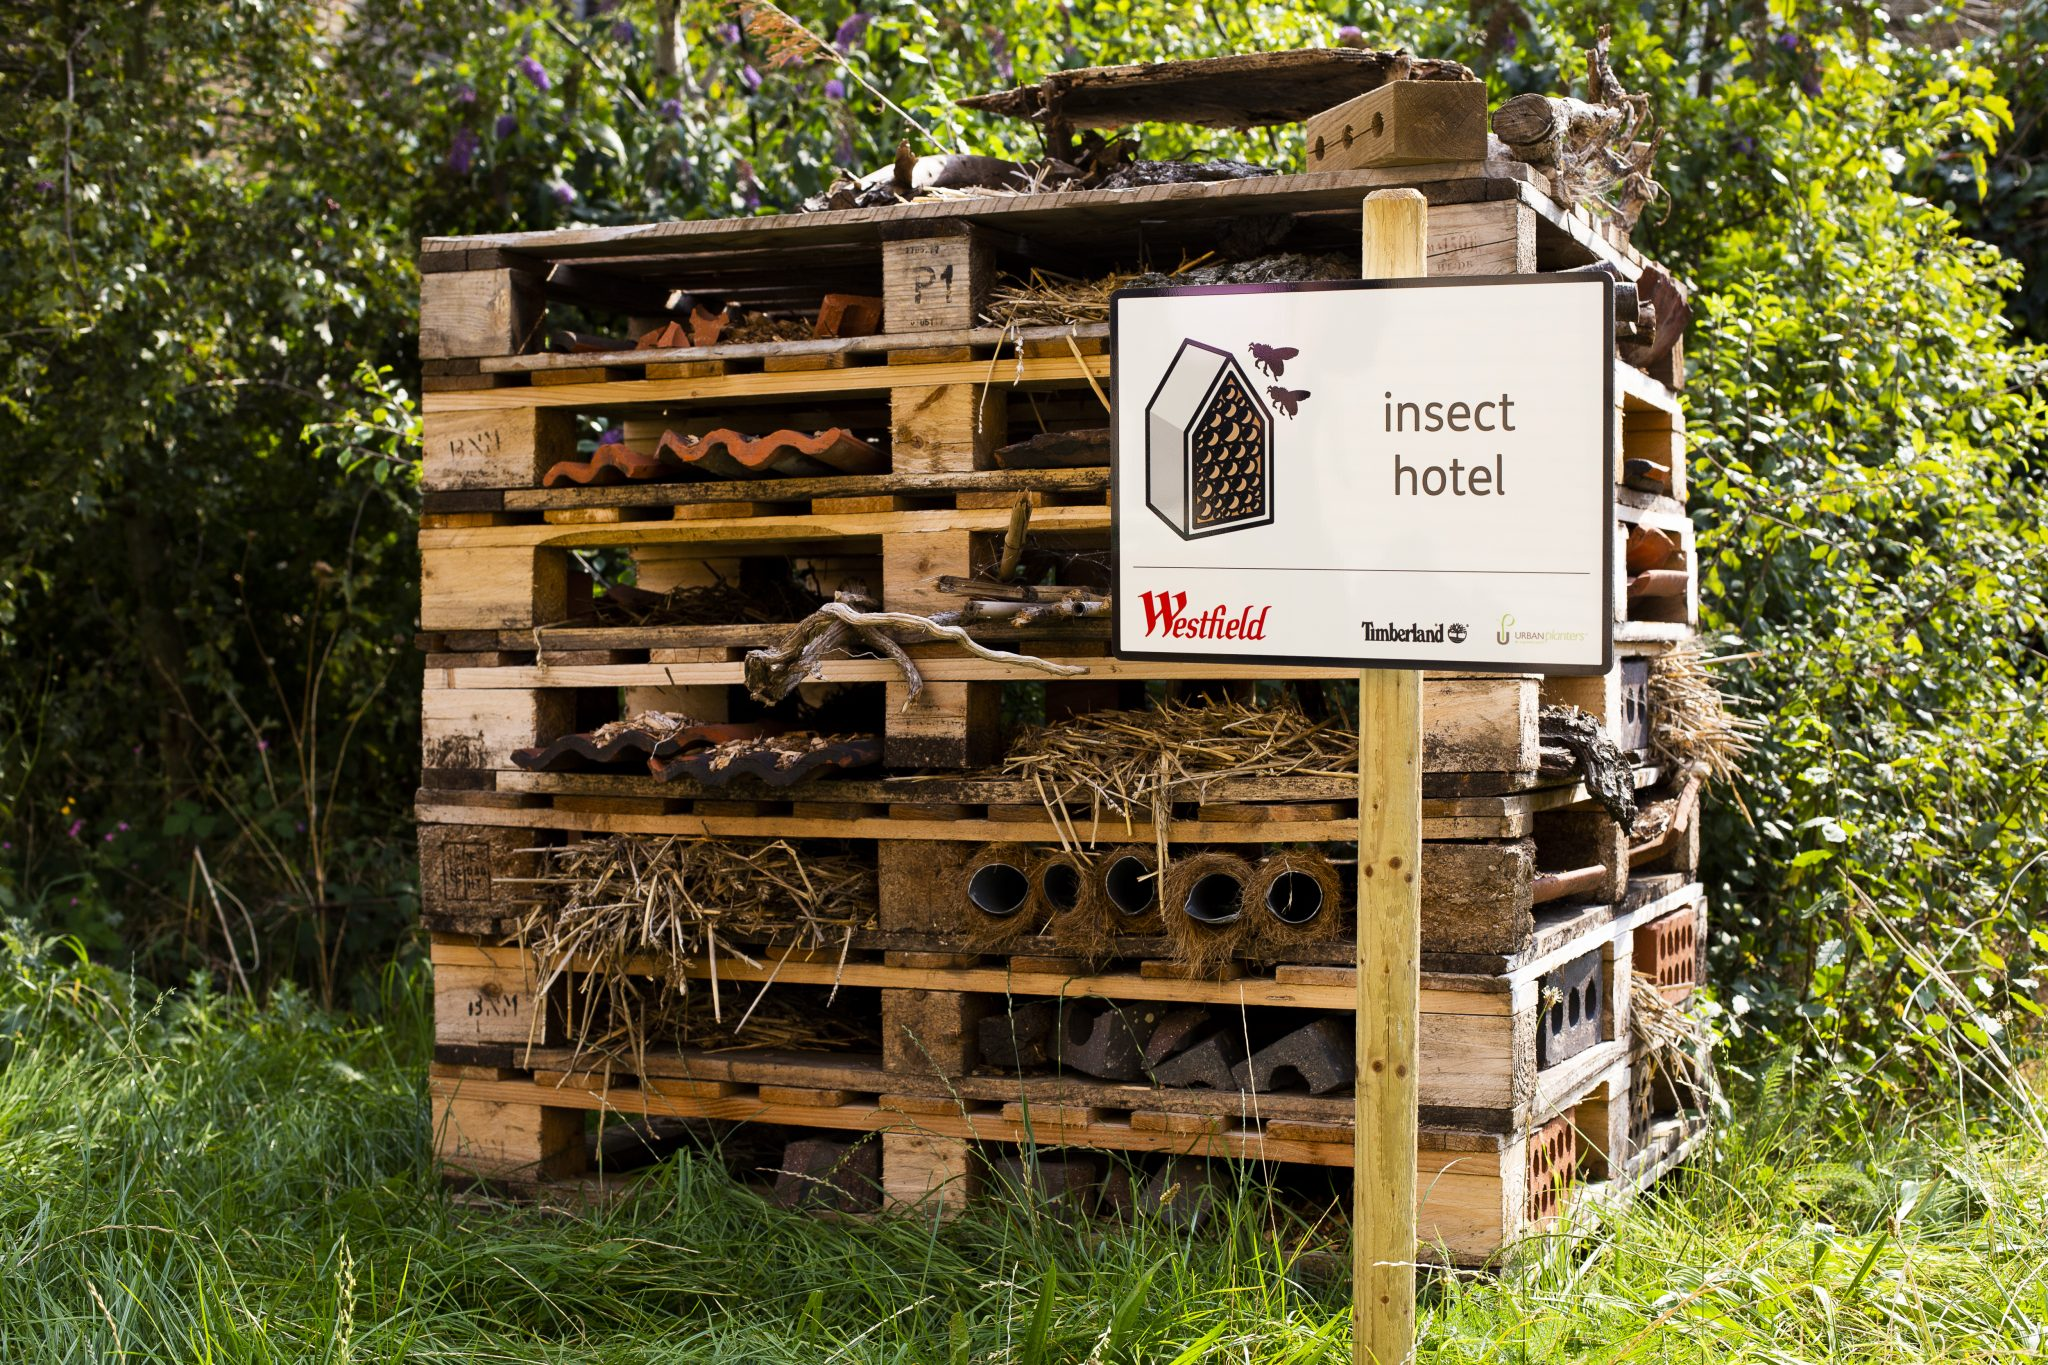 The Westfield London nature reserve has opened in association with Timberland